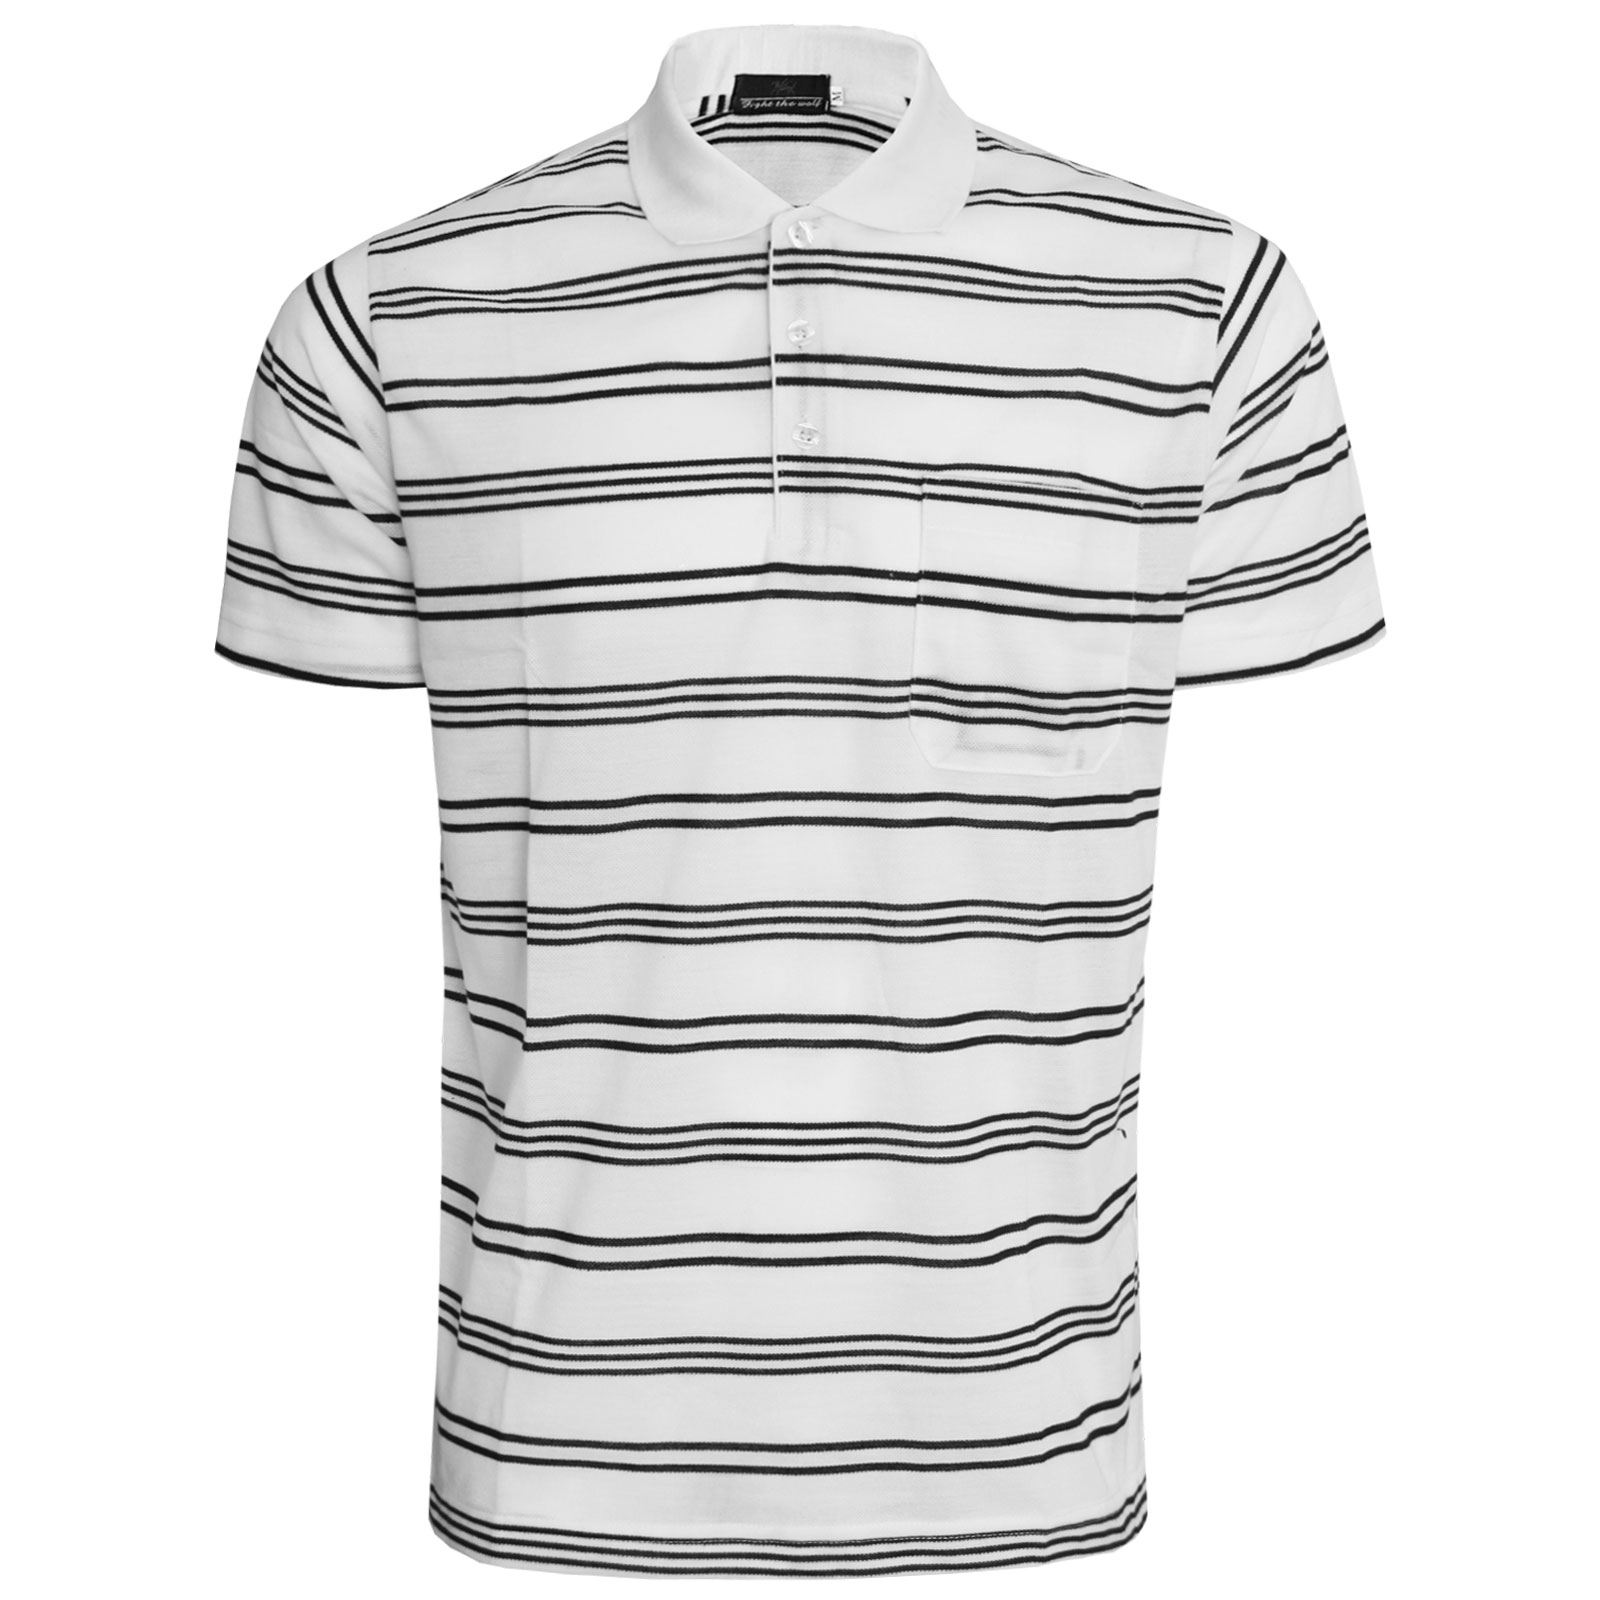 Black and white striped t shirt xxl - Mens Striped Polo Shirt Short Sleeve Top Golf